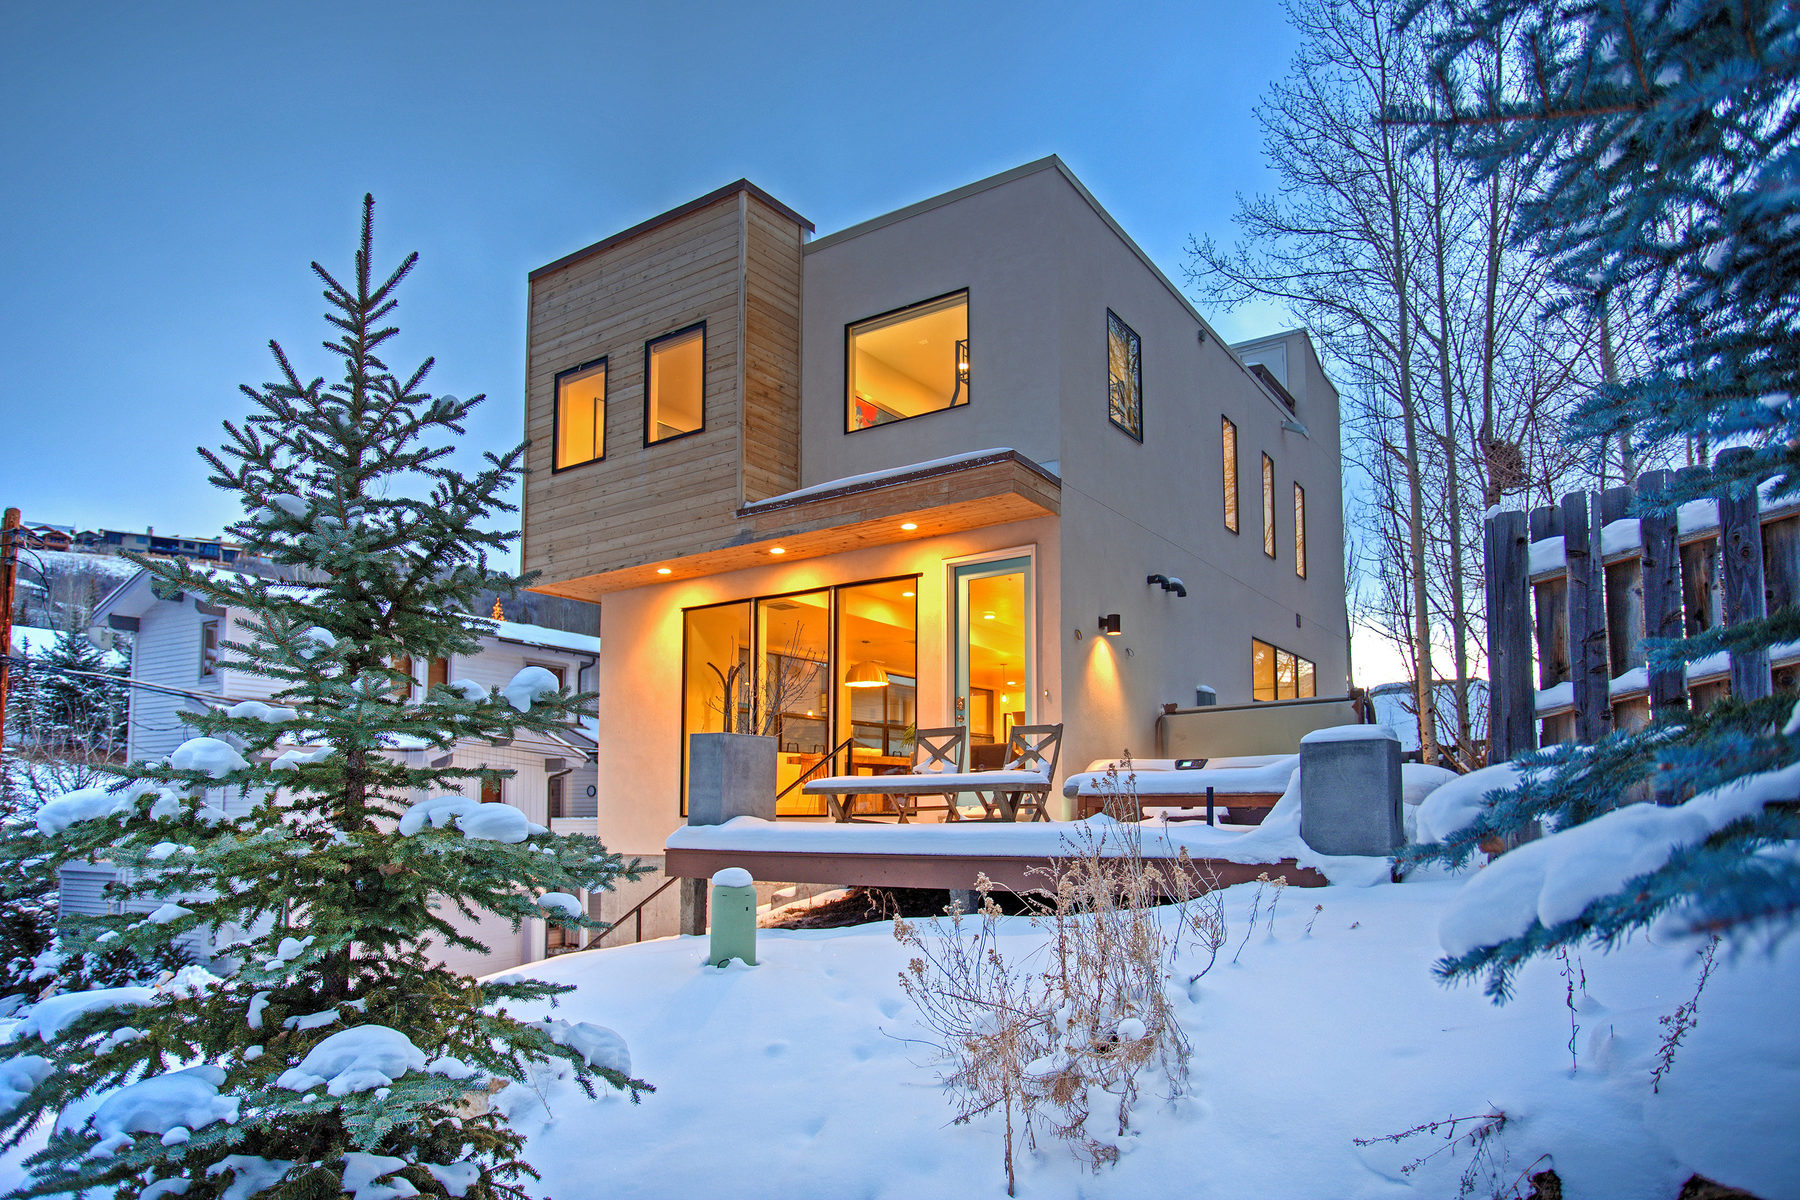 Single Family Home for Sale at Design + Location = Perfection. 597 Deer Valley Loop Dr Park City, Utah, 84060 United States